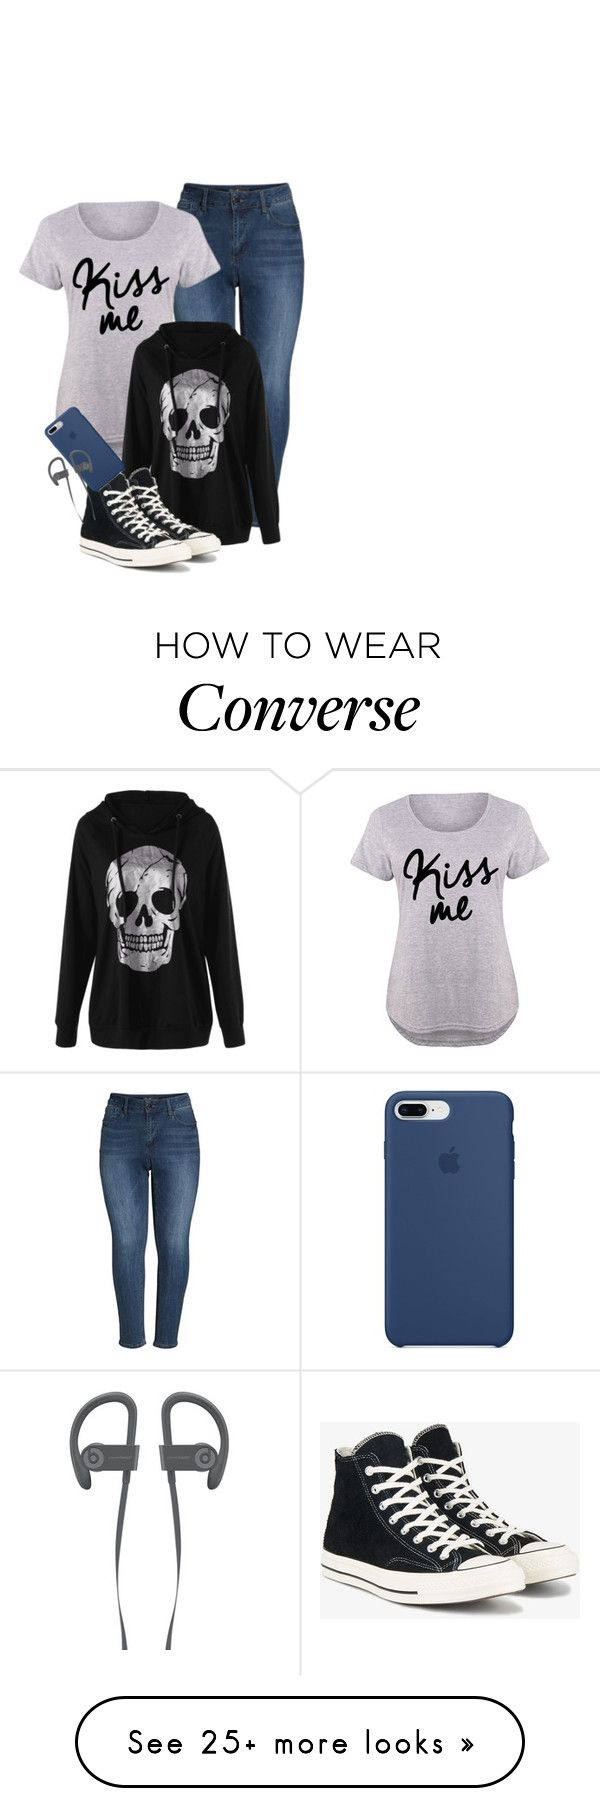 """""""ootd"""" by miniaturellamagladiator on Polyvore featuring Seven7 Jeans, Converse, Apple and plus size clothing"""